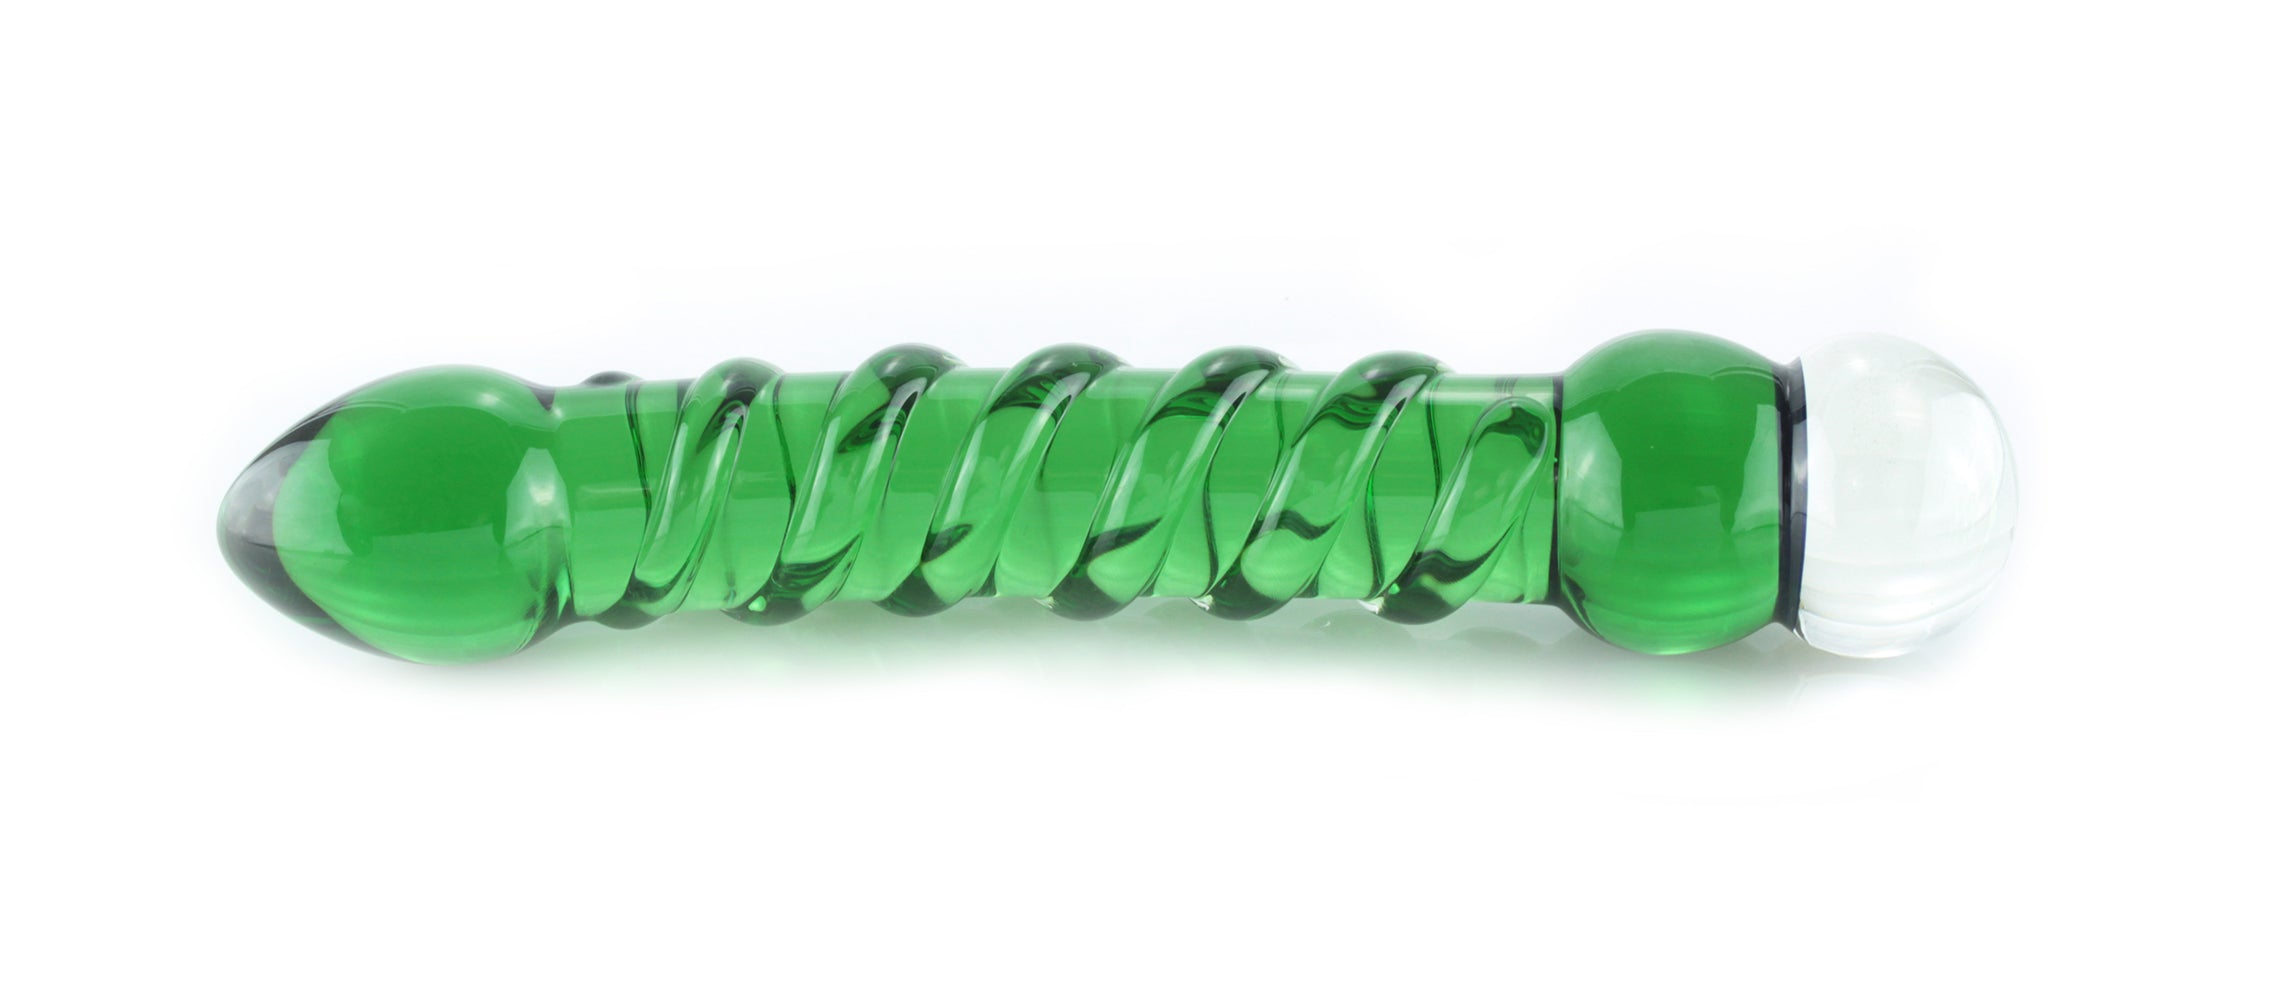 Green glass dildo with spirals and dichroic butterfly